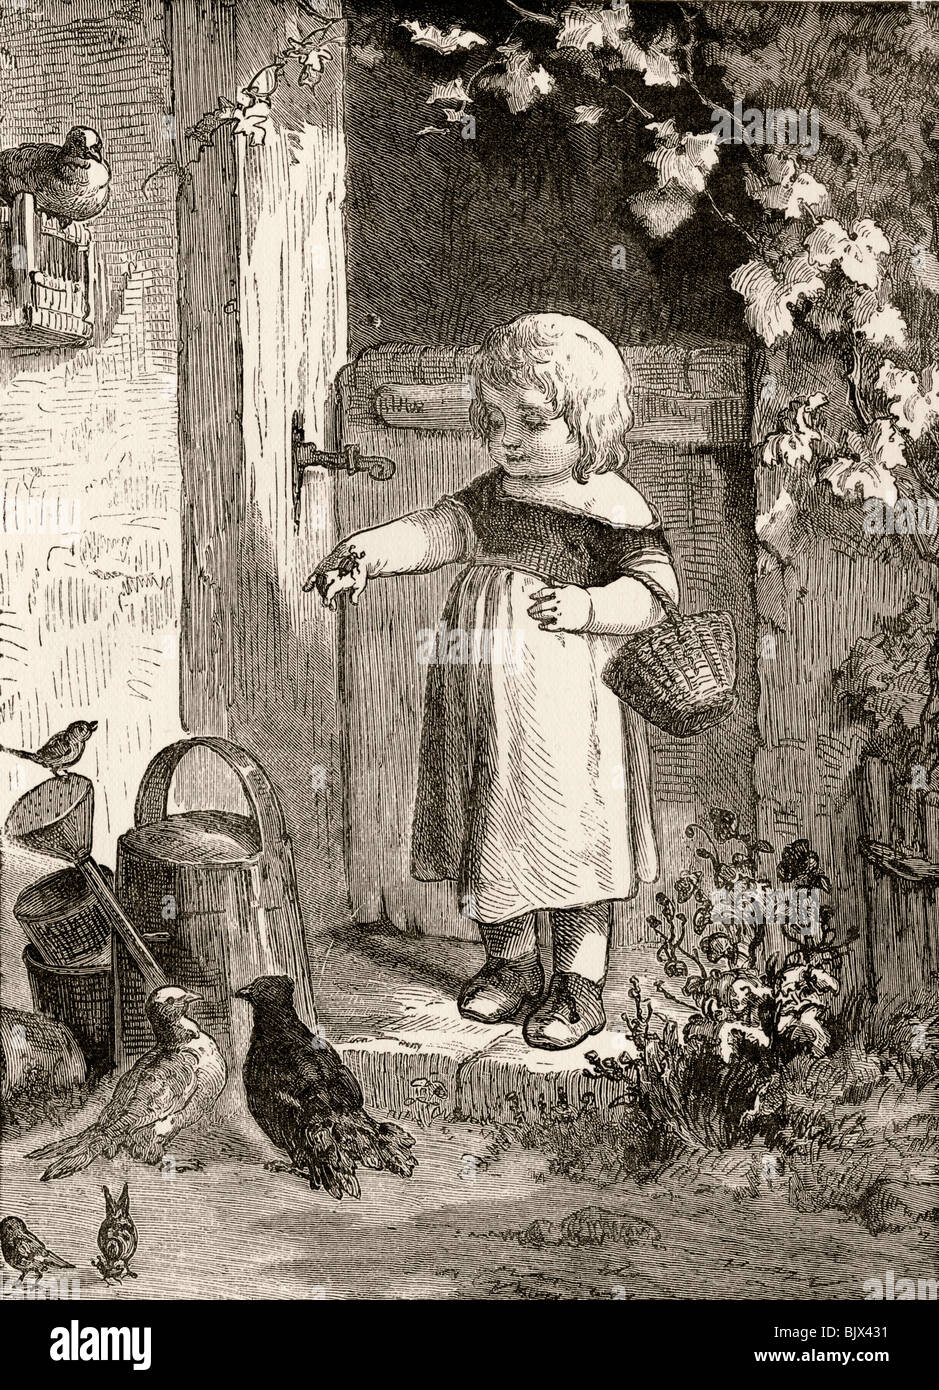 Example of 19th century children's book illustration. Little girl with insect on her hand in farmyard setting. - Stock Image